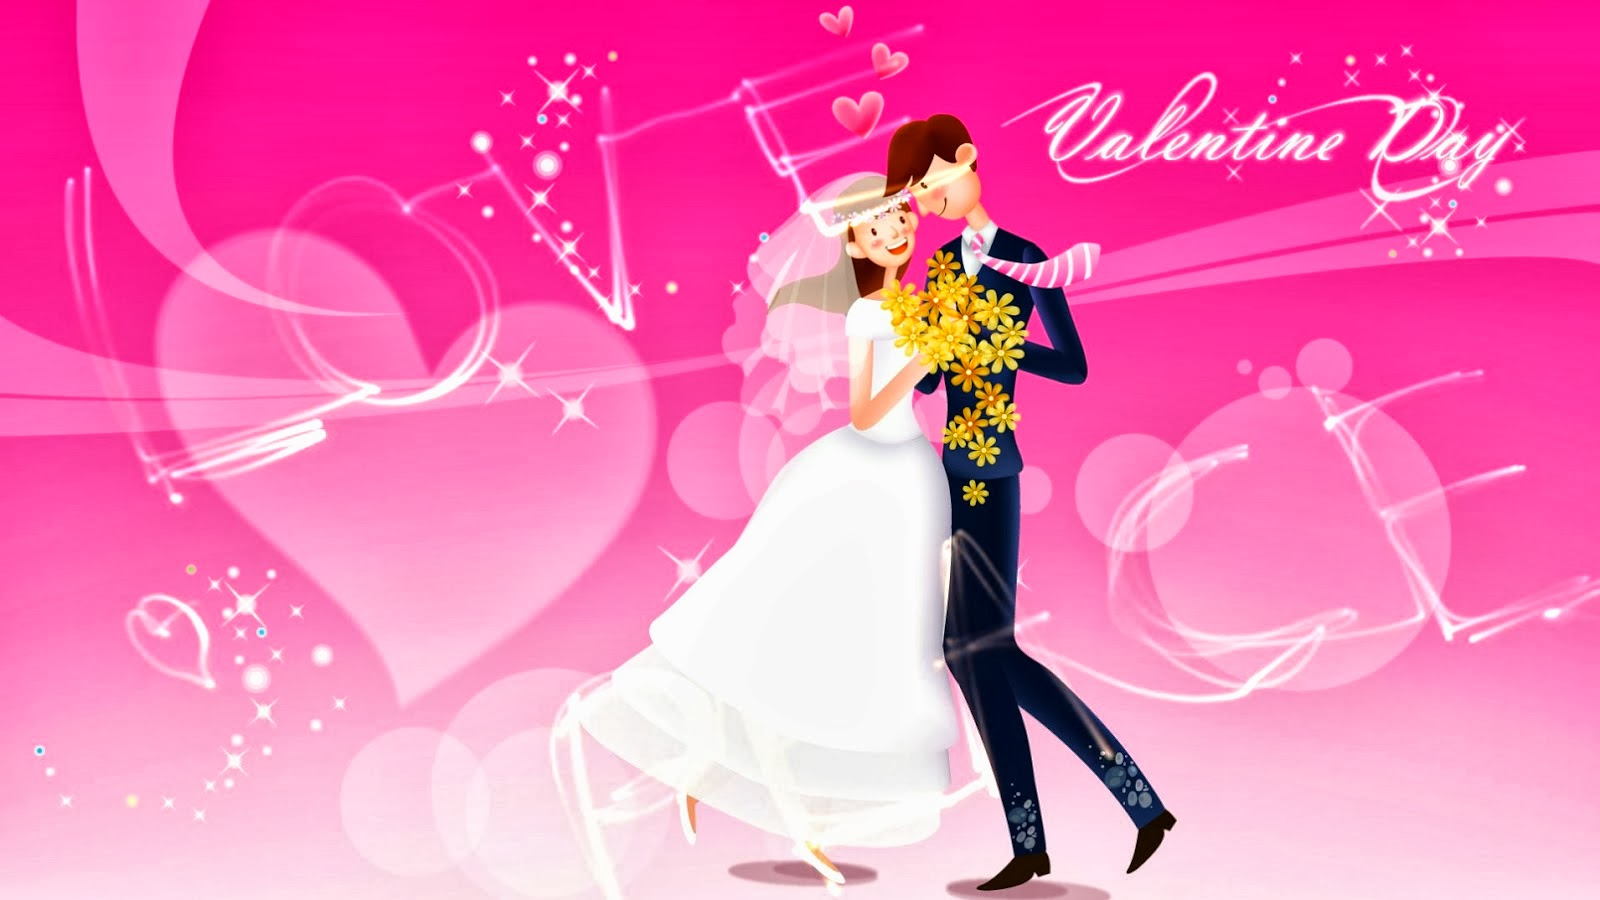 lovely happy valentine day pictures download in hd, Ideas